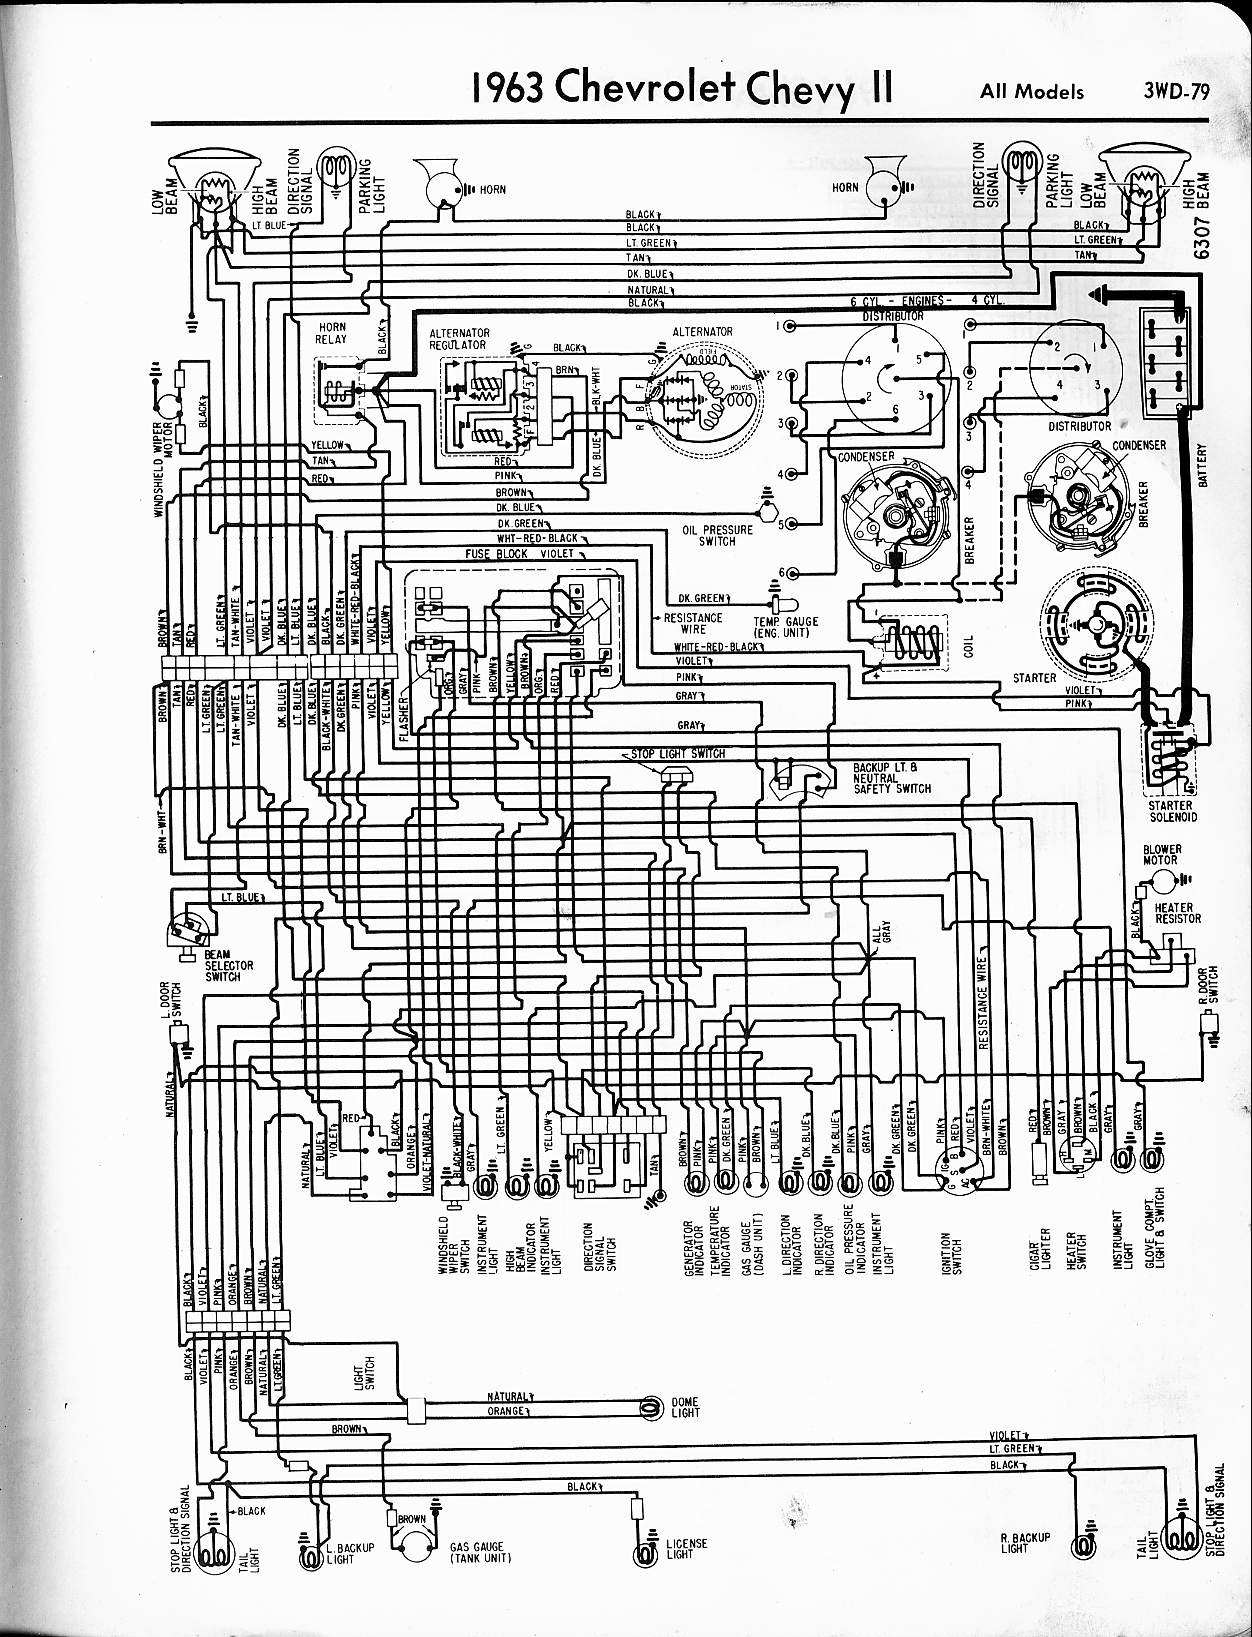 MWireChev63_3WD 079 57 65 chevy wiring diagrams 1970 chevelle wiring harness diagram at honlapkeszites.co